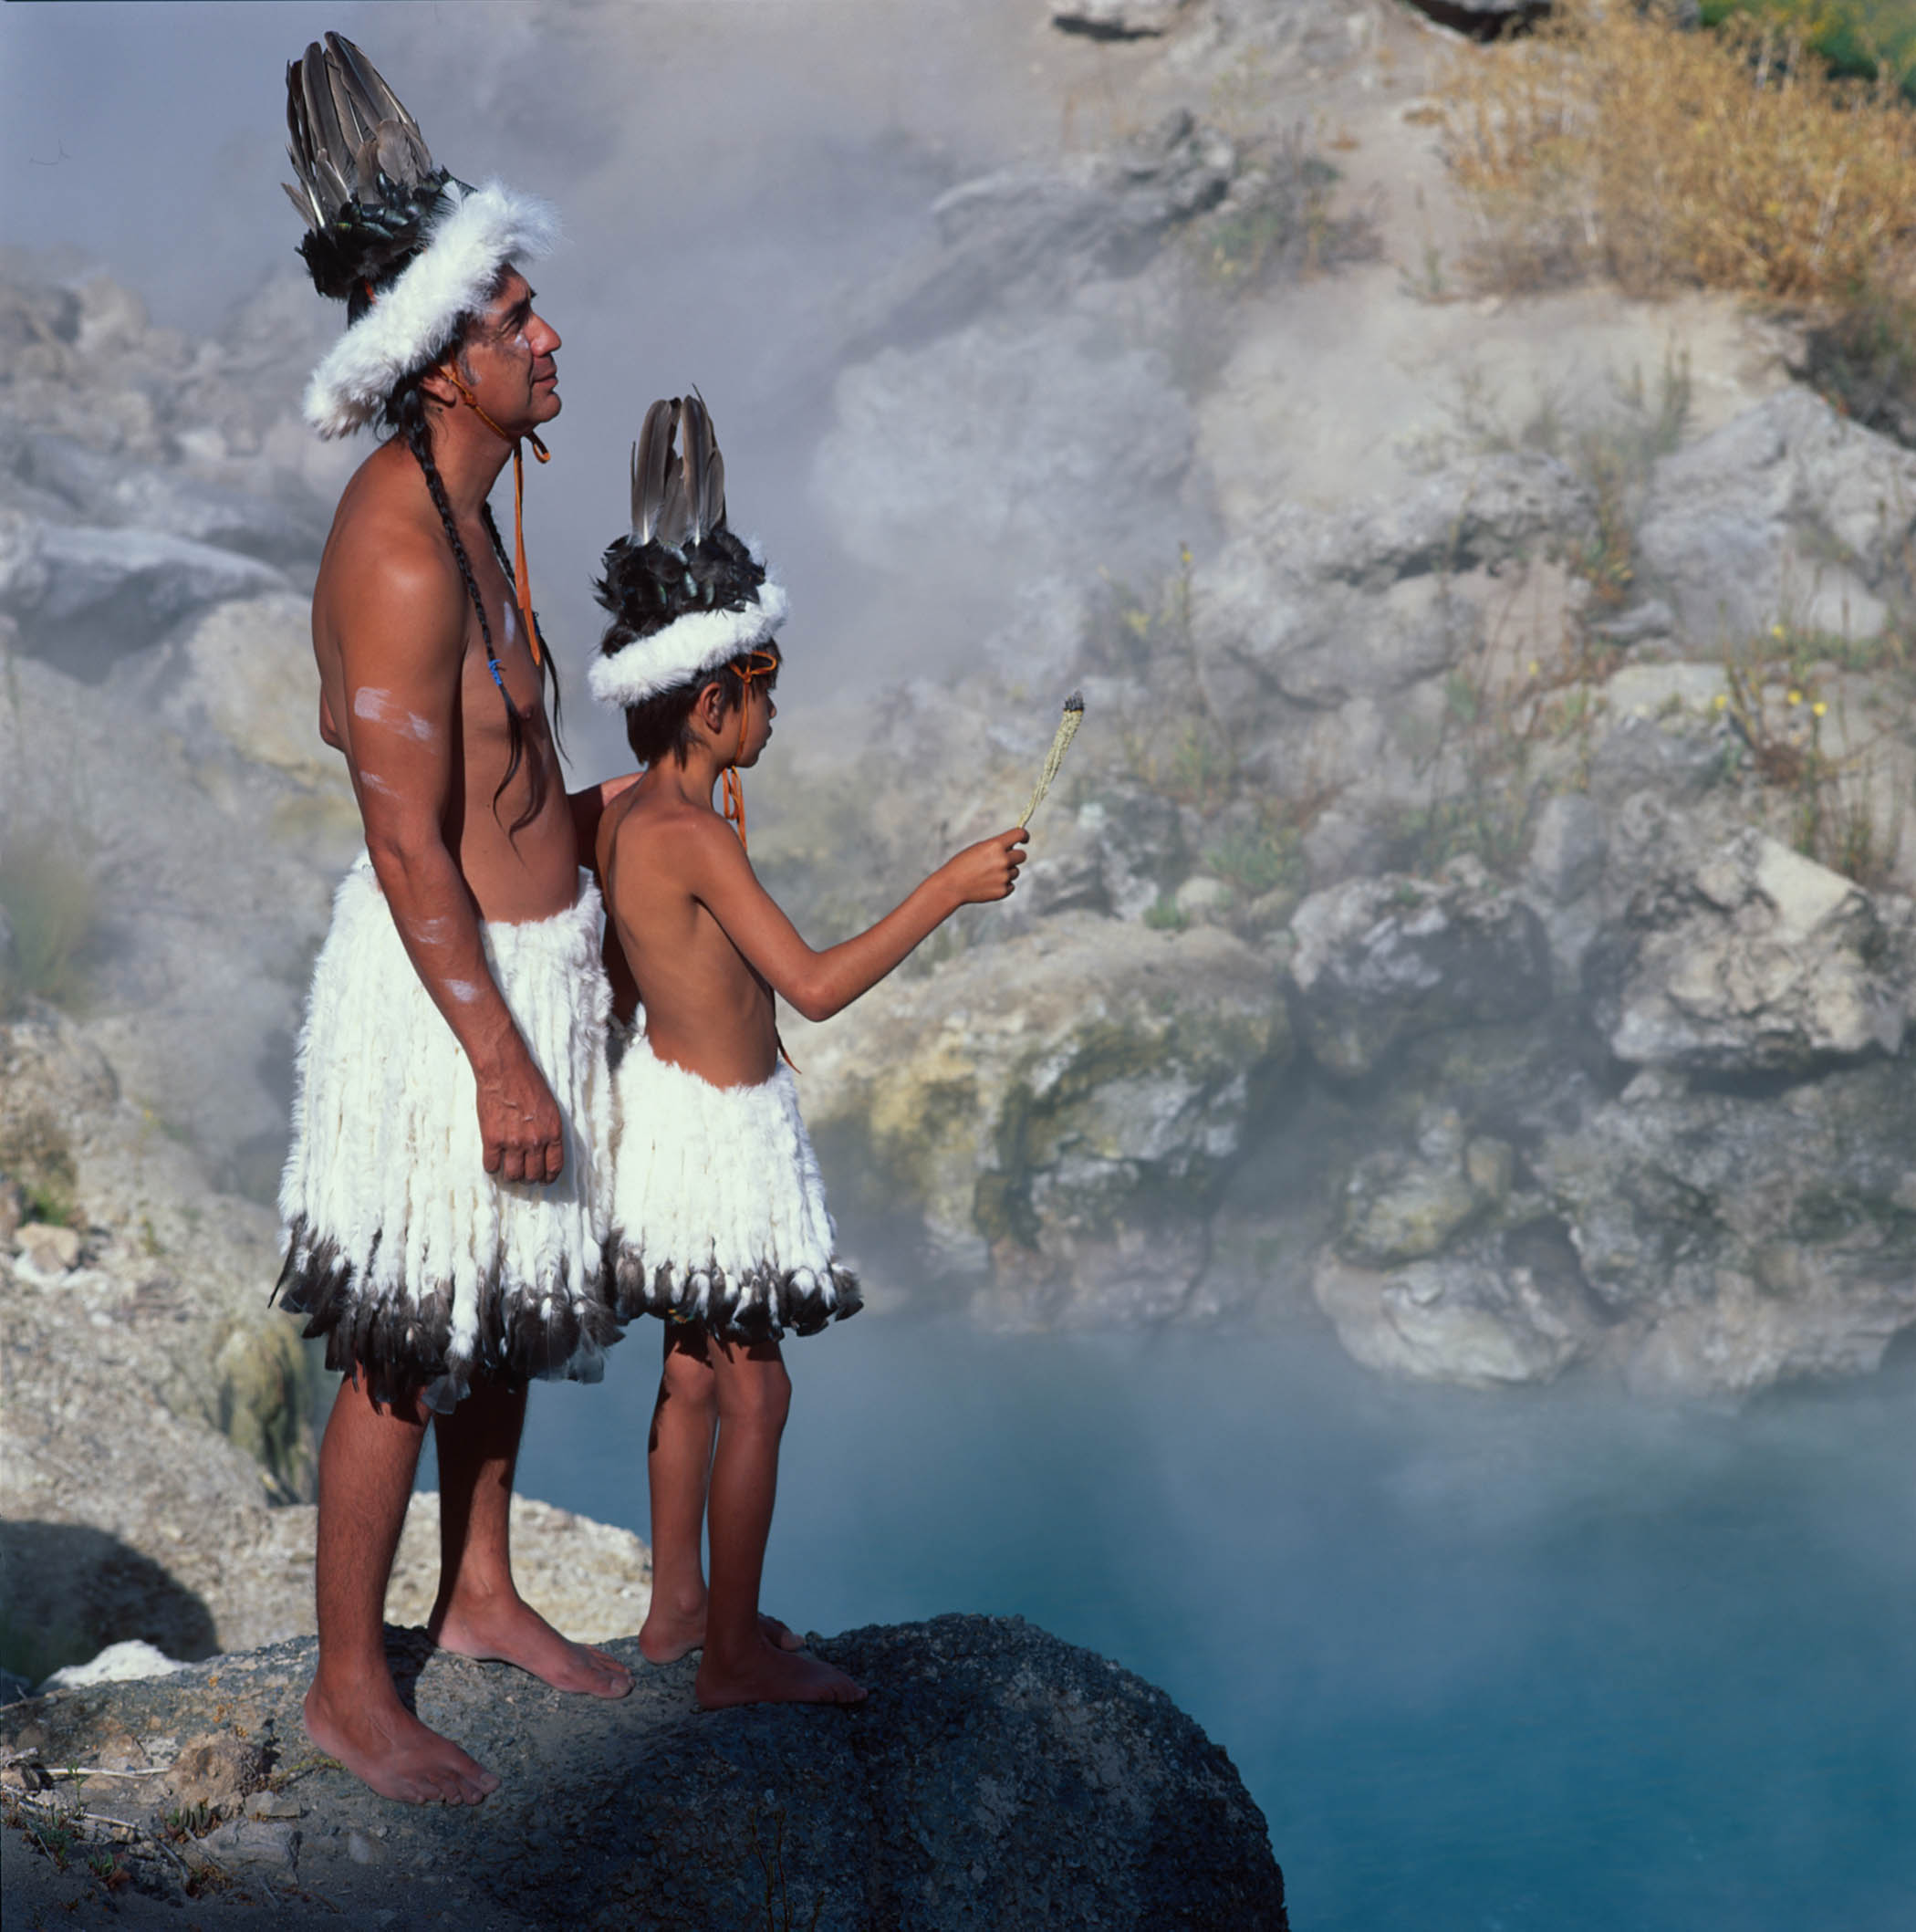 USA - Native Americans - Paiute - Shoshone - ceremony at the hot creek - Paul Chavez and his son